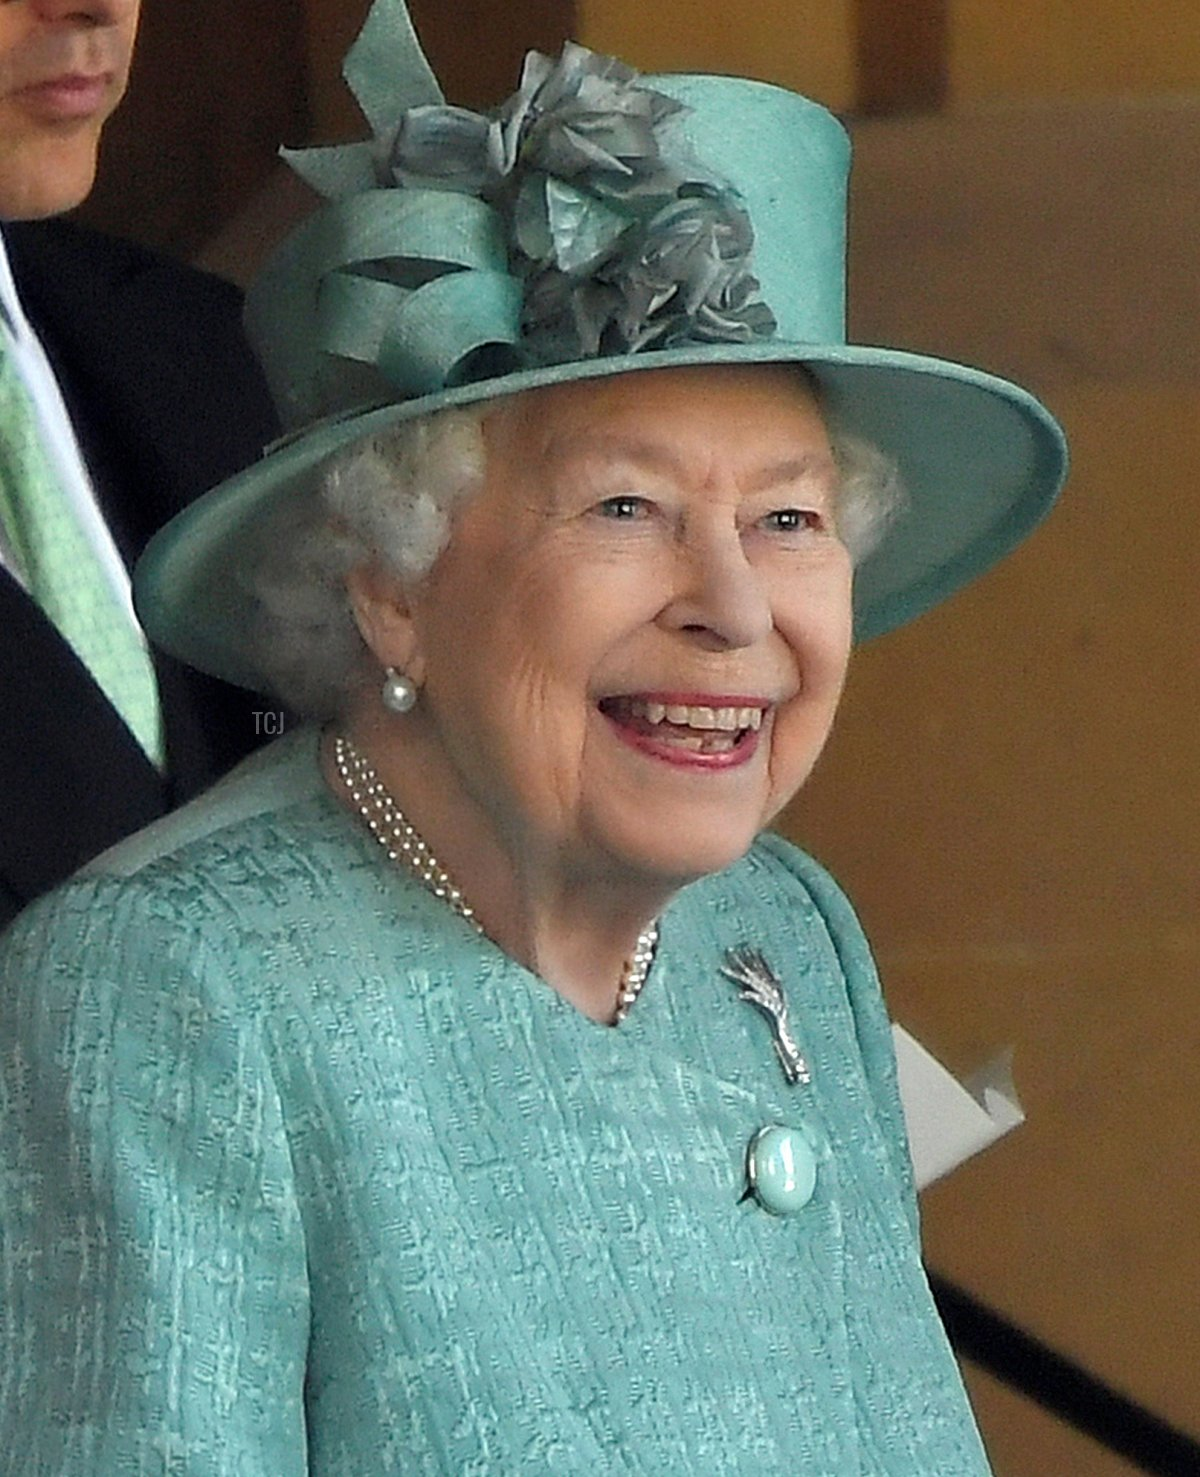 Queen Elizabeth II attends a ceremony to mark her official birthday at Windsor Castle on June 13, 2020 in Windsor, England